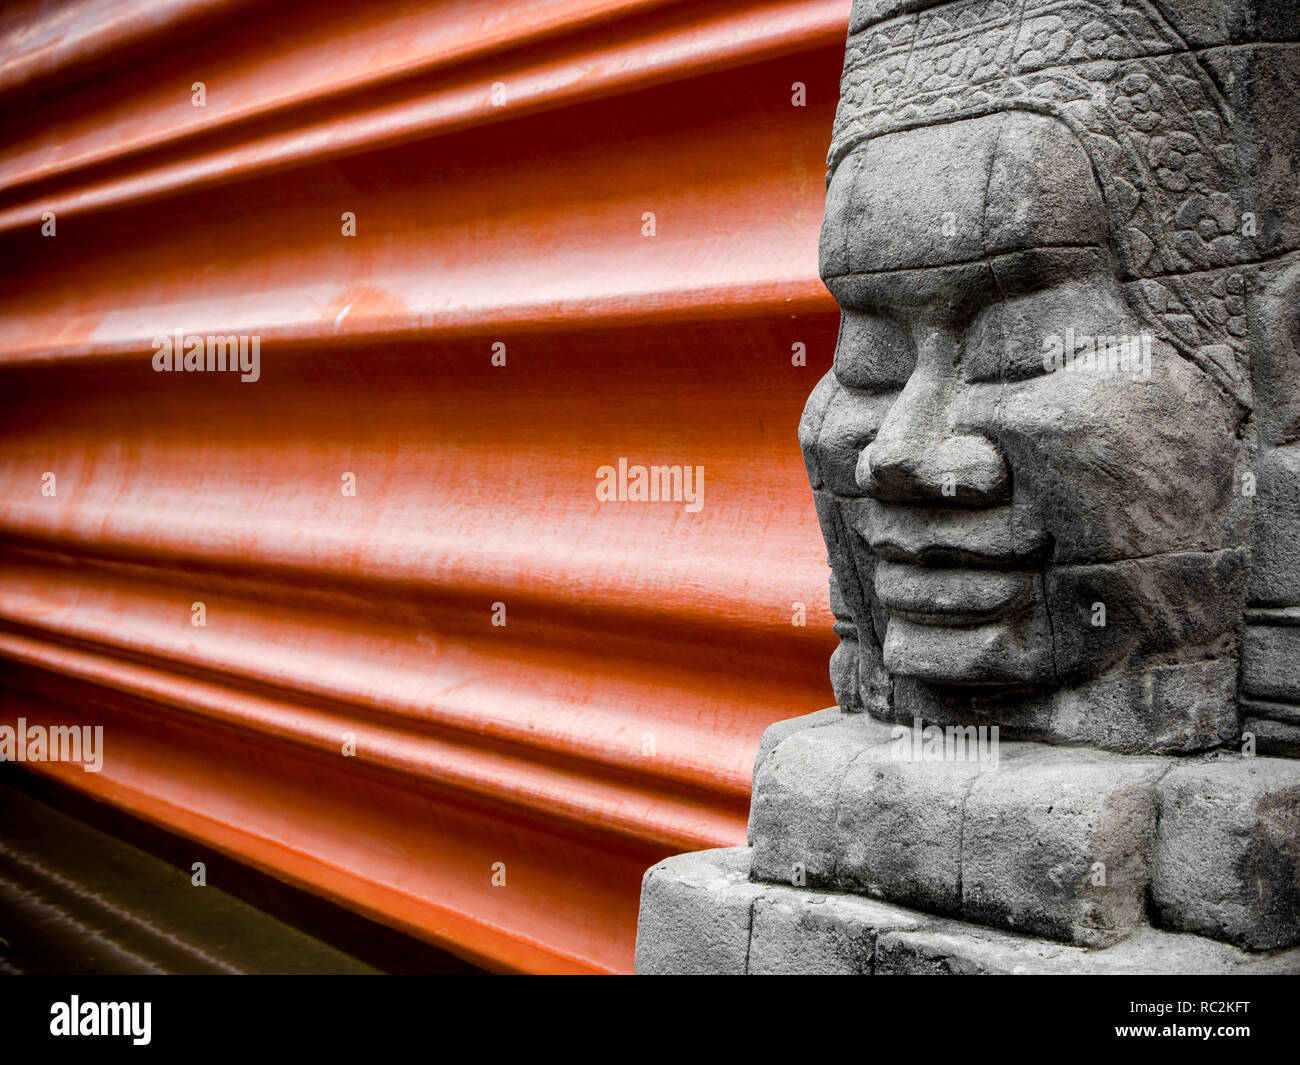 The ancient sandstone sculpture, The decor of the hotel building - Stock Image